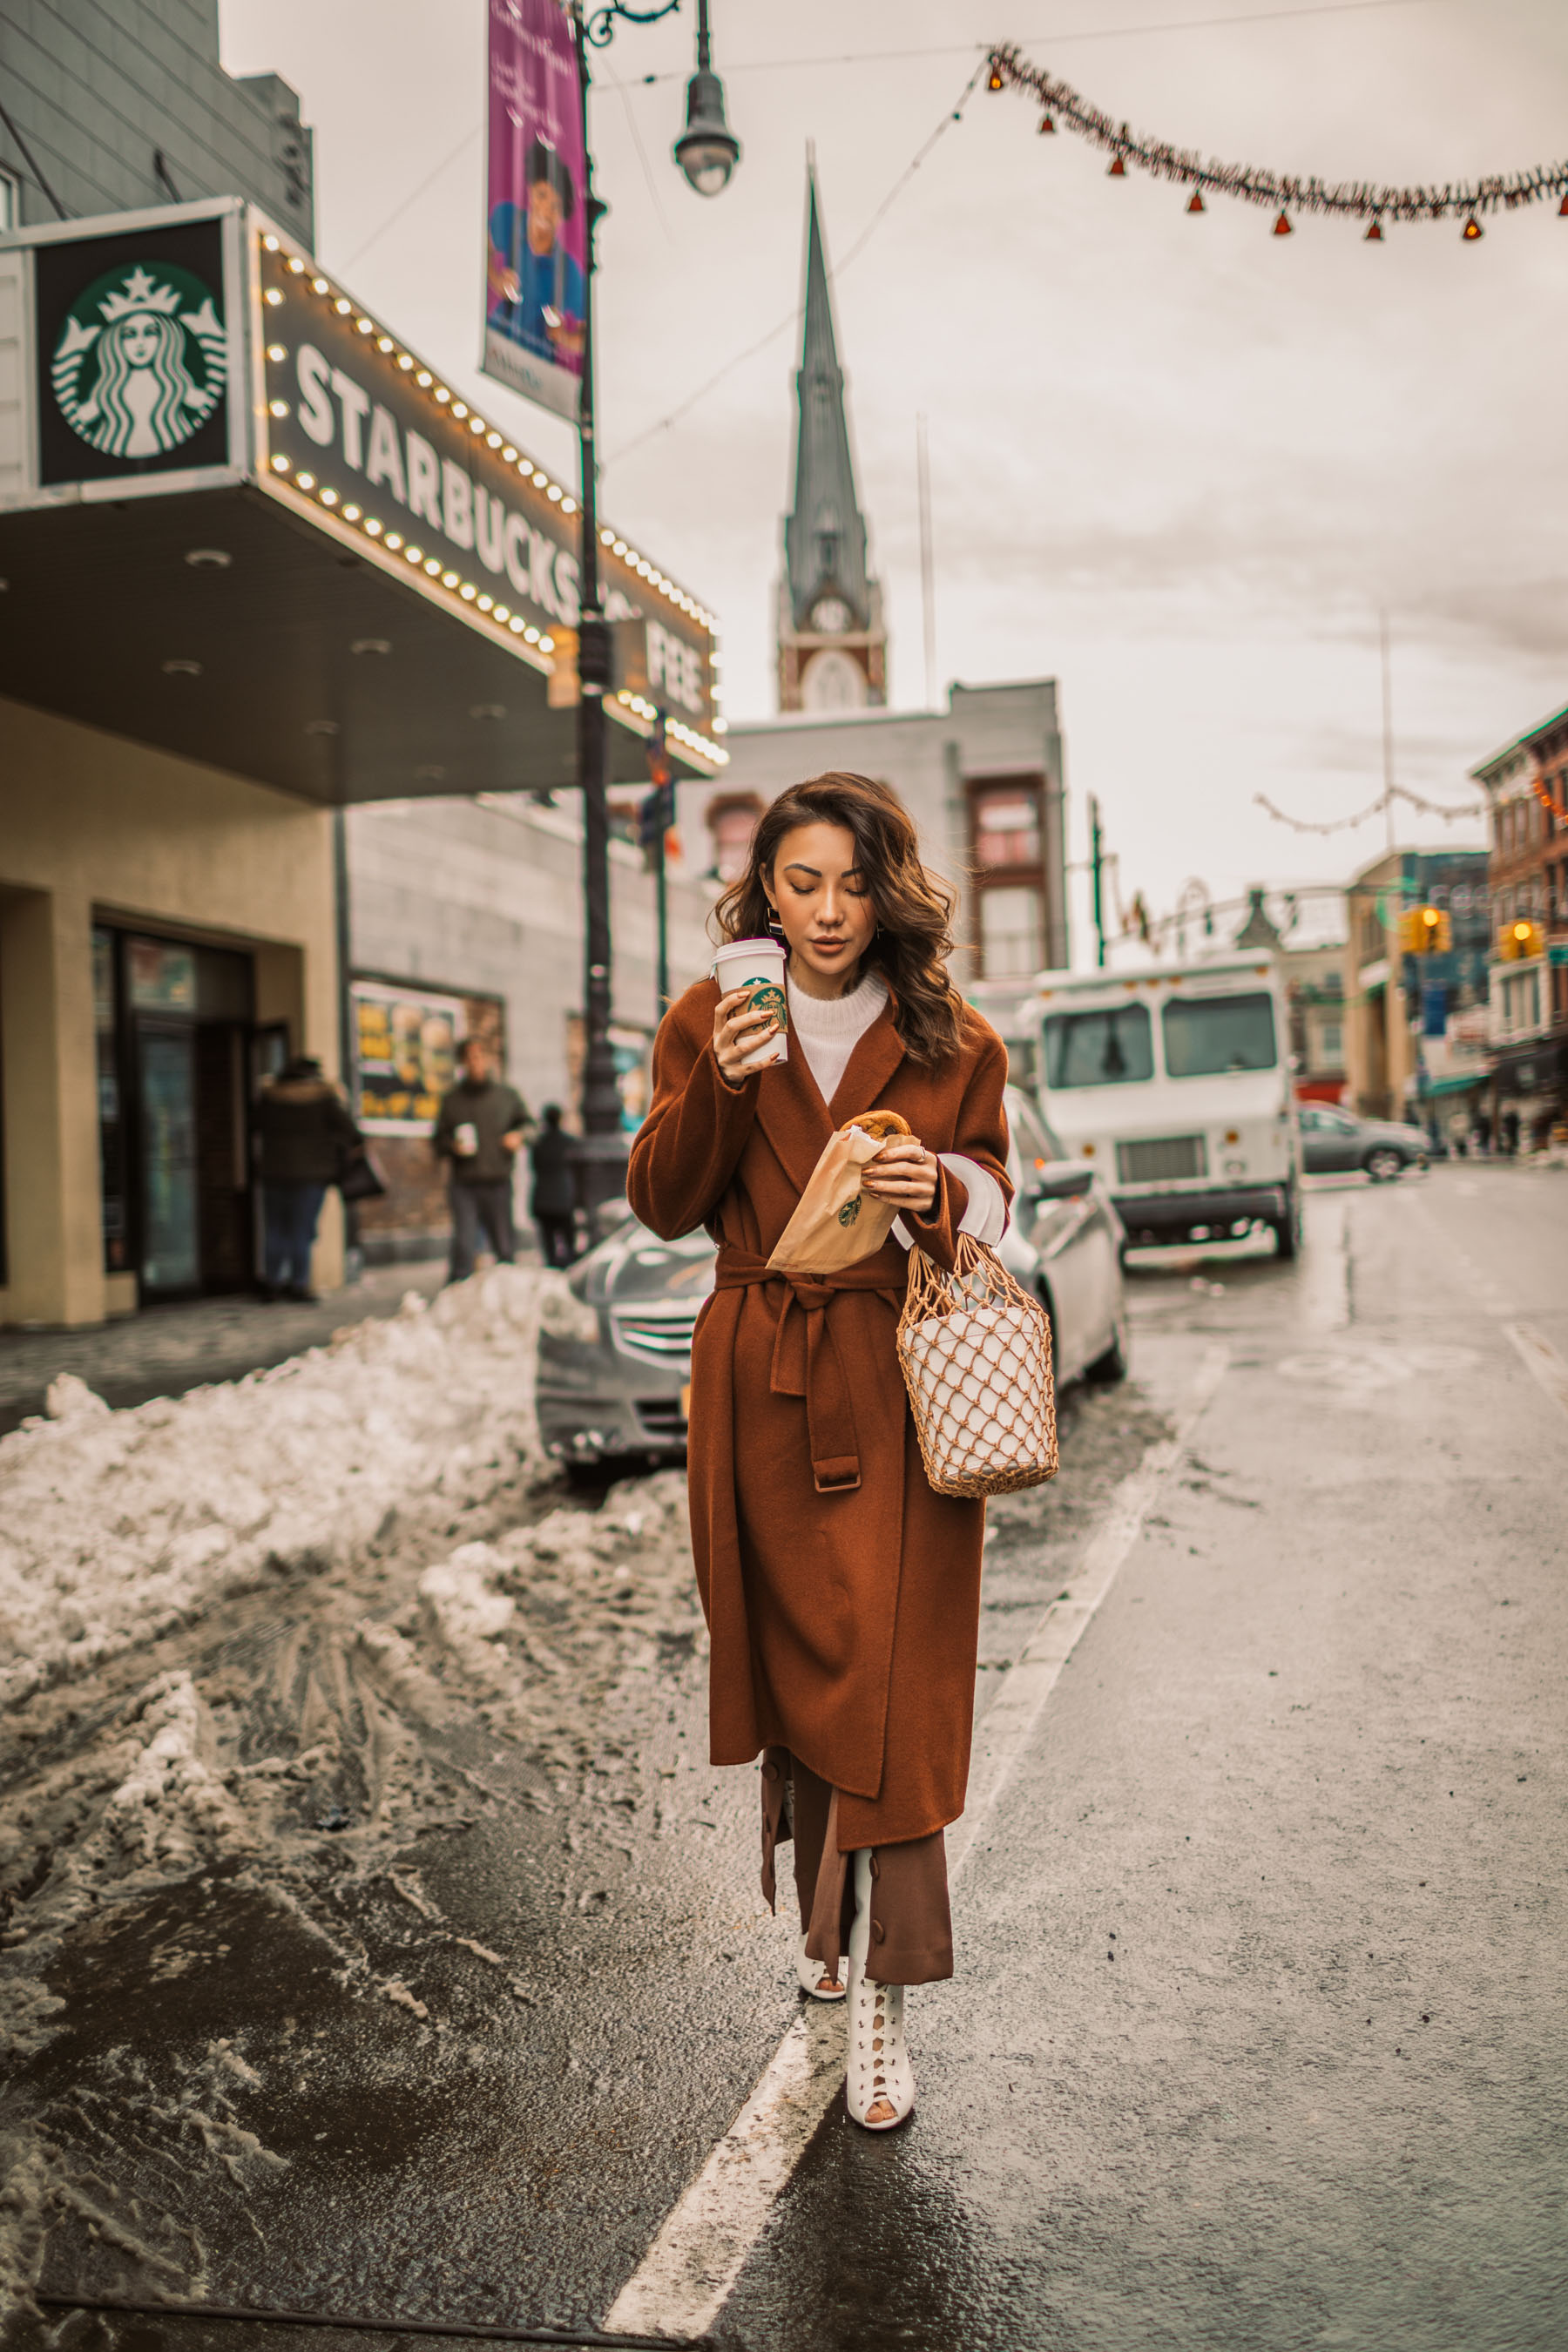 Up and Coming Handbag Brands to Know in 2018 // Notjessfashion.com // staud macrame bag, brown button trousers, wrap coat, robe coat, chic winter outfit, new york fashion blogger